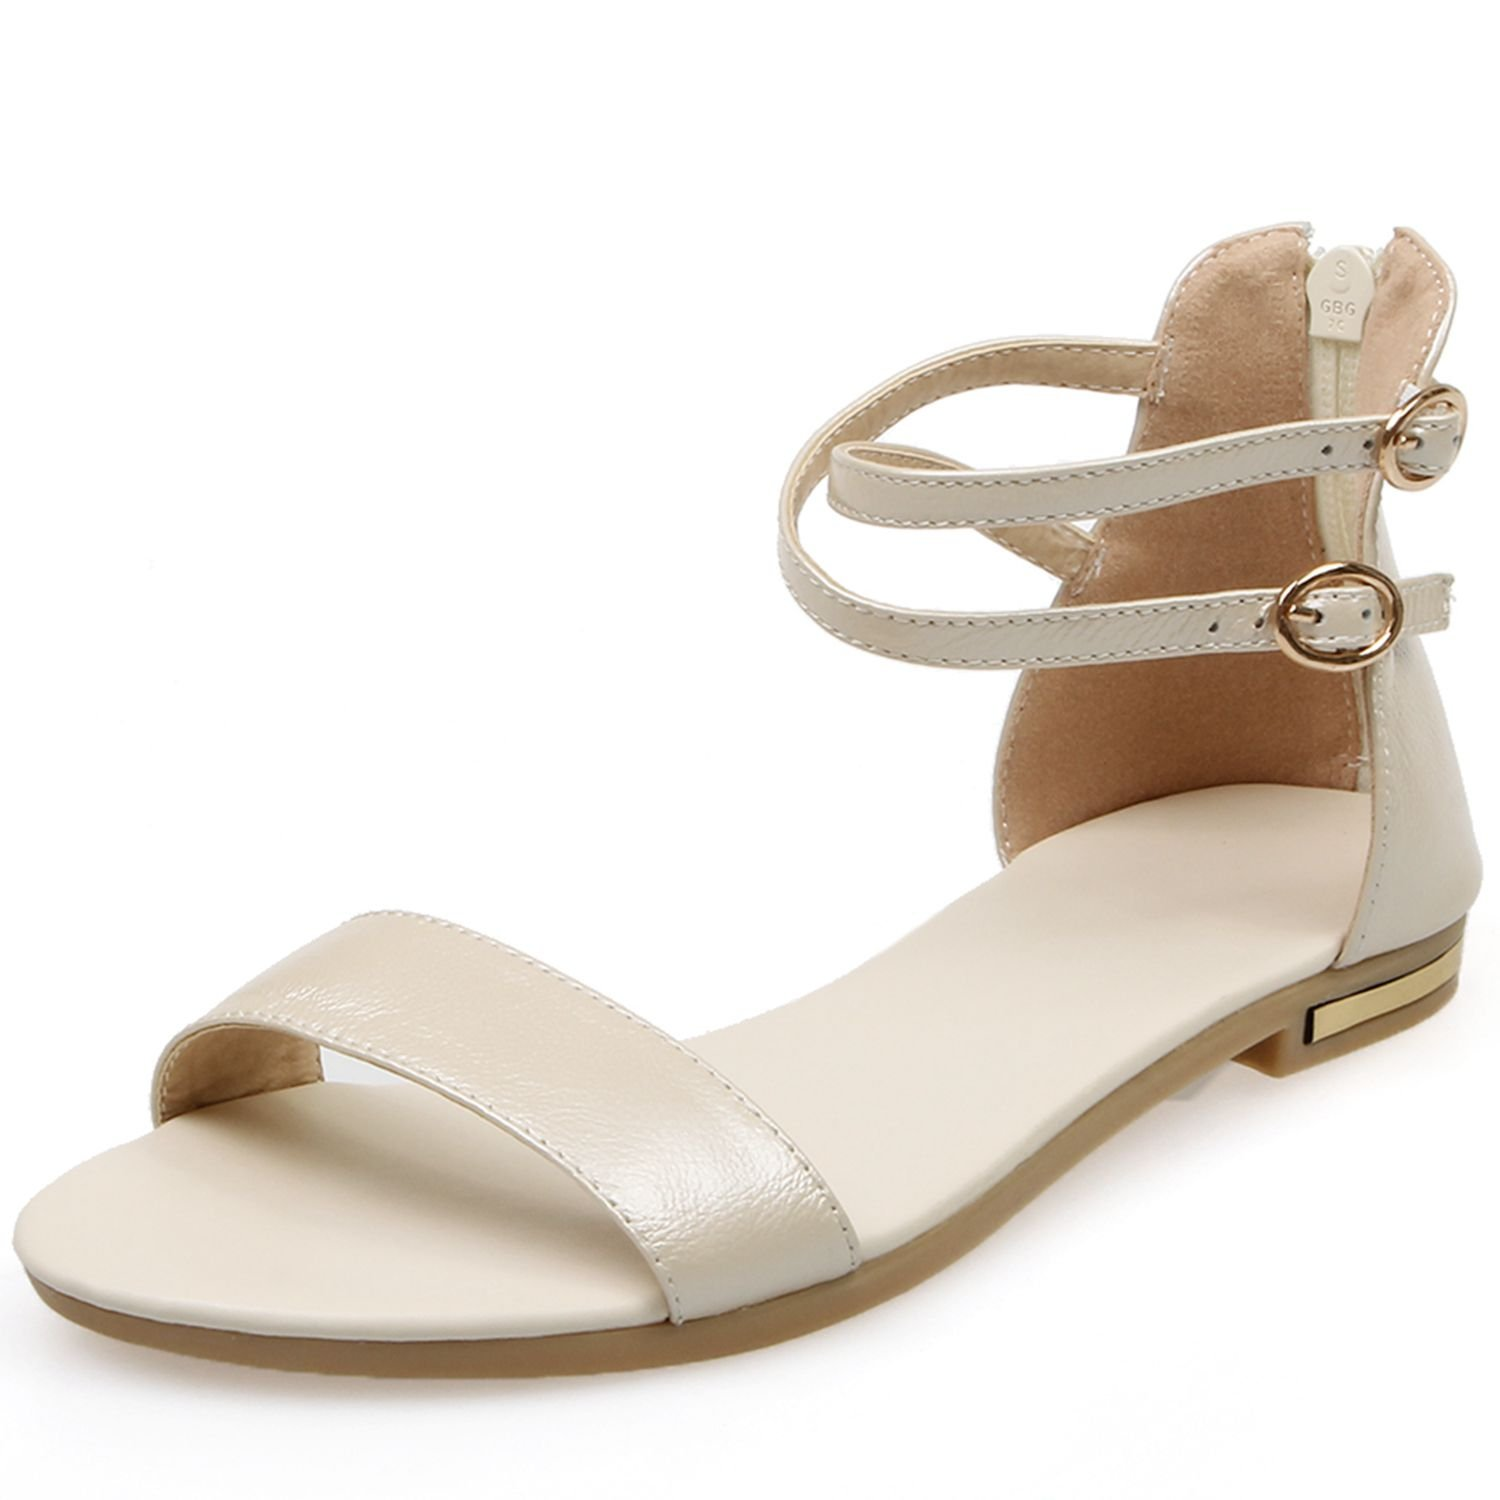 VIMISAOI Women's Leather Buckle Strap Summer Open Toe Ankle Strap Zip Casual Flat Sandals Shoes B0794MBYF9 9.5 B(M) US|Creamy White